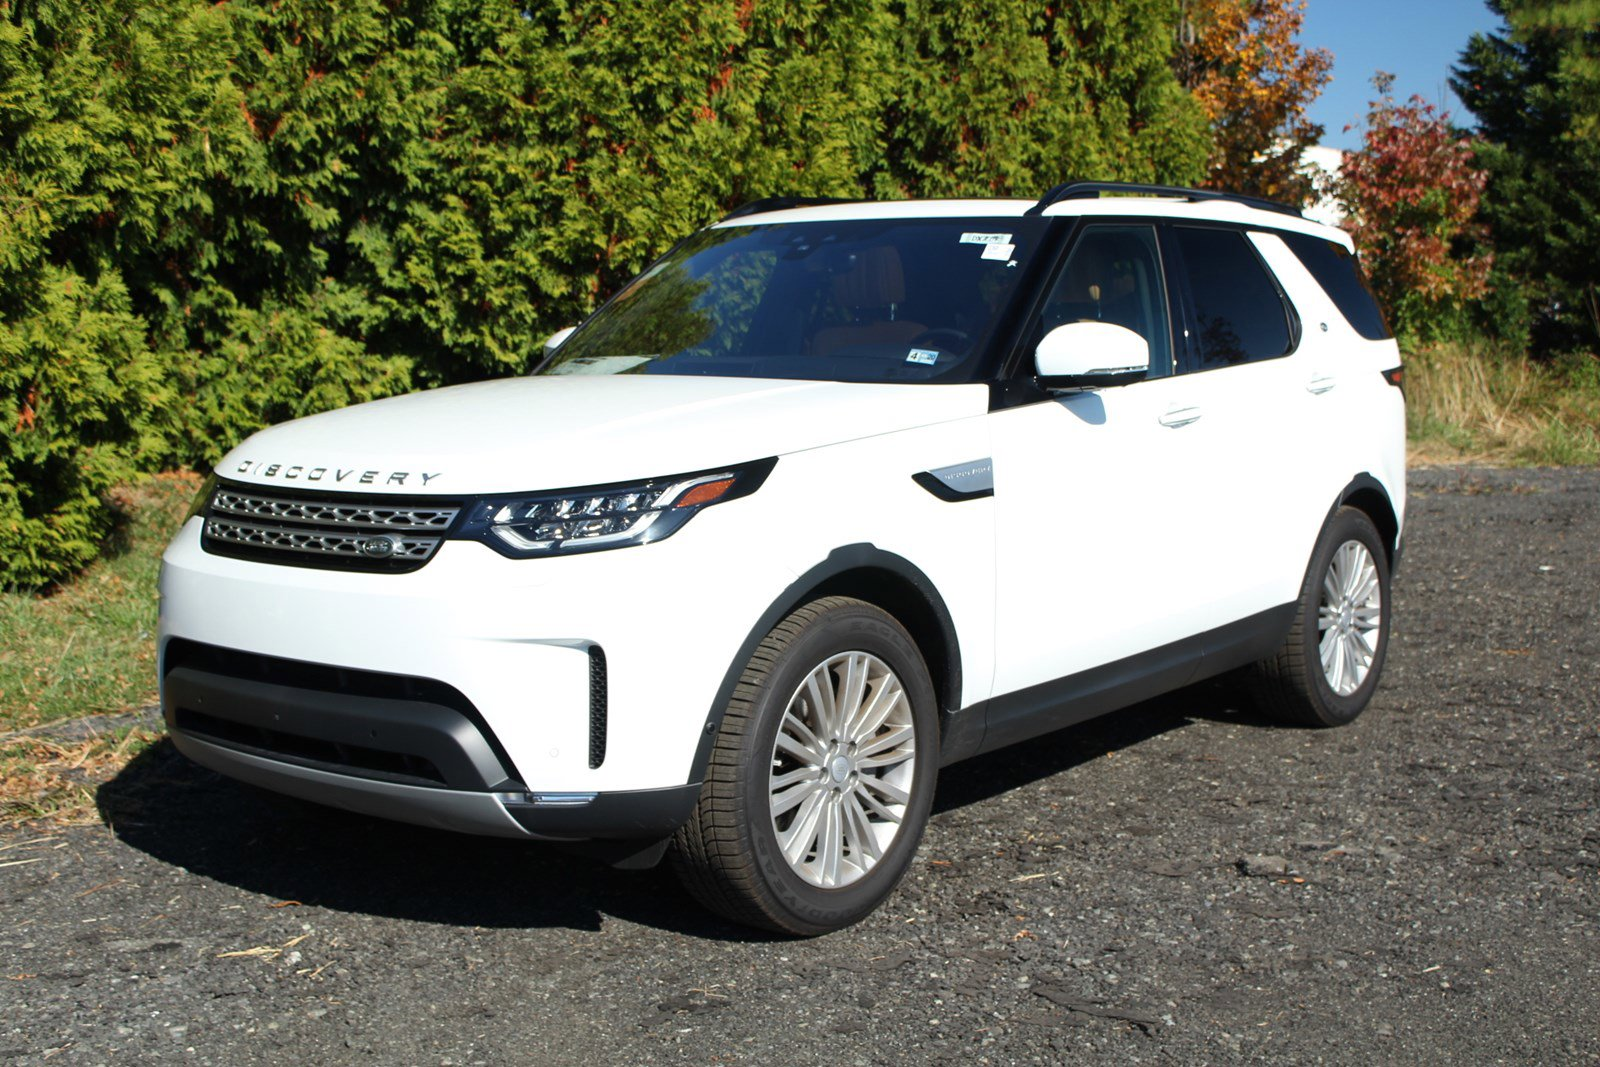 Rosenthal Land Rover >> Land Rover Chantilly Reston Sterling Leesburg Centreville